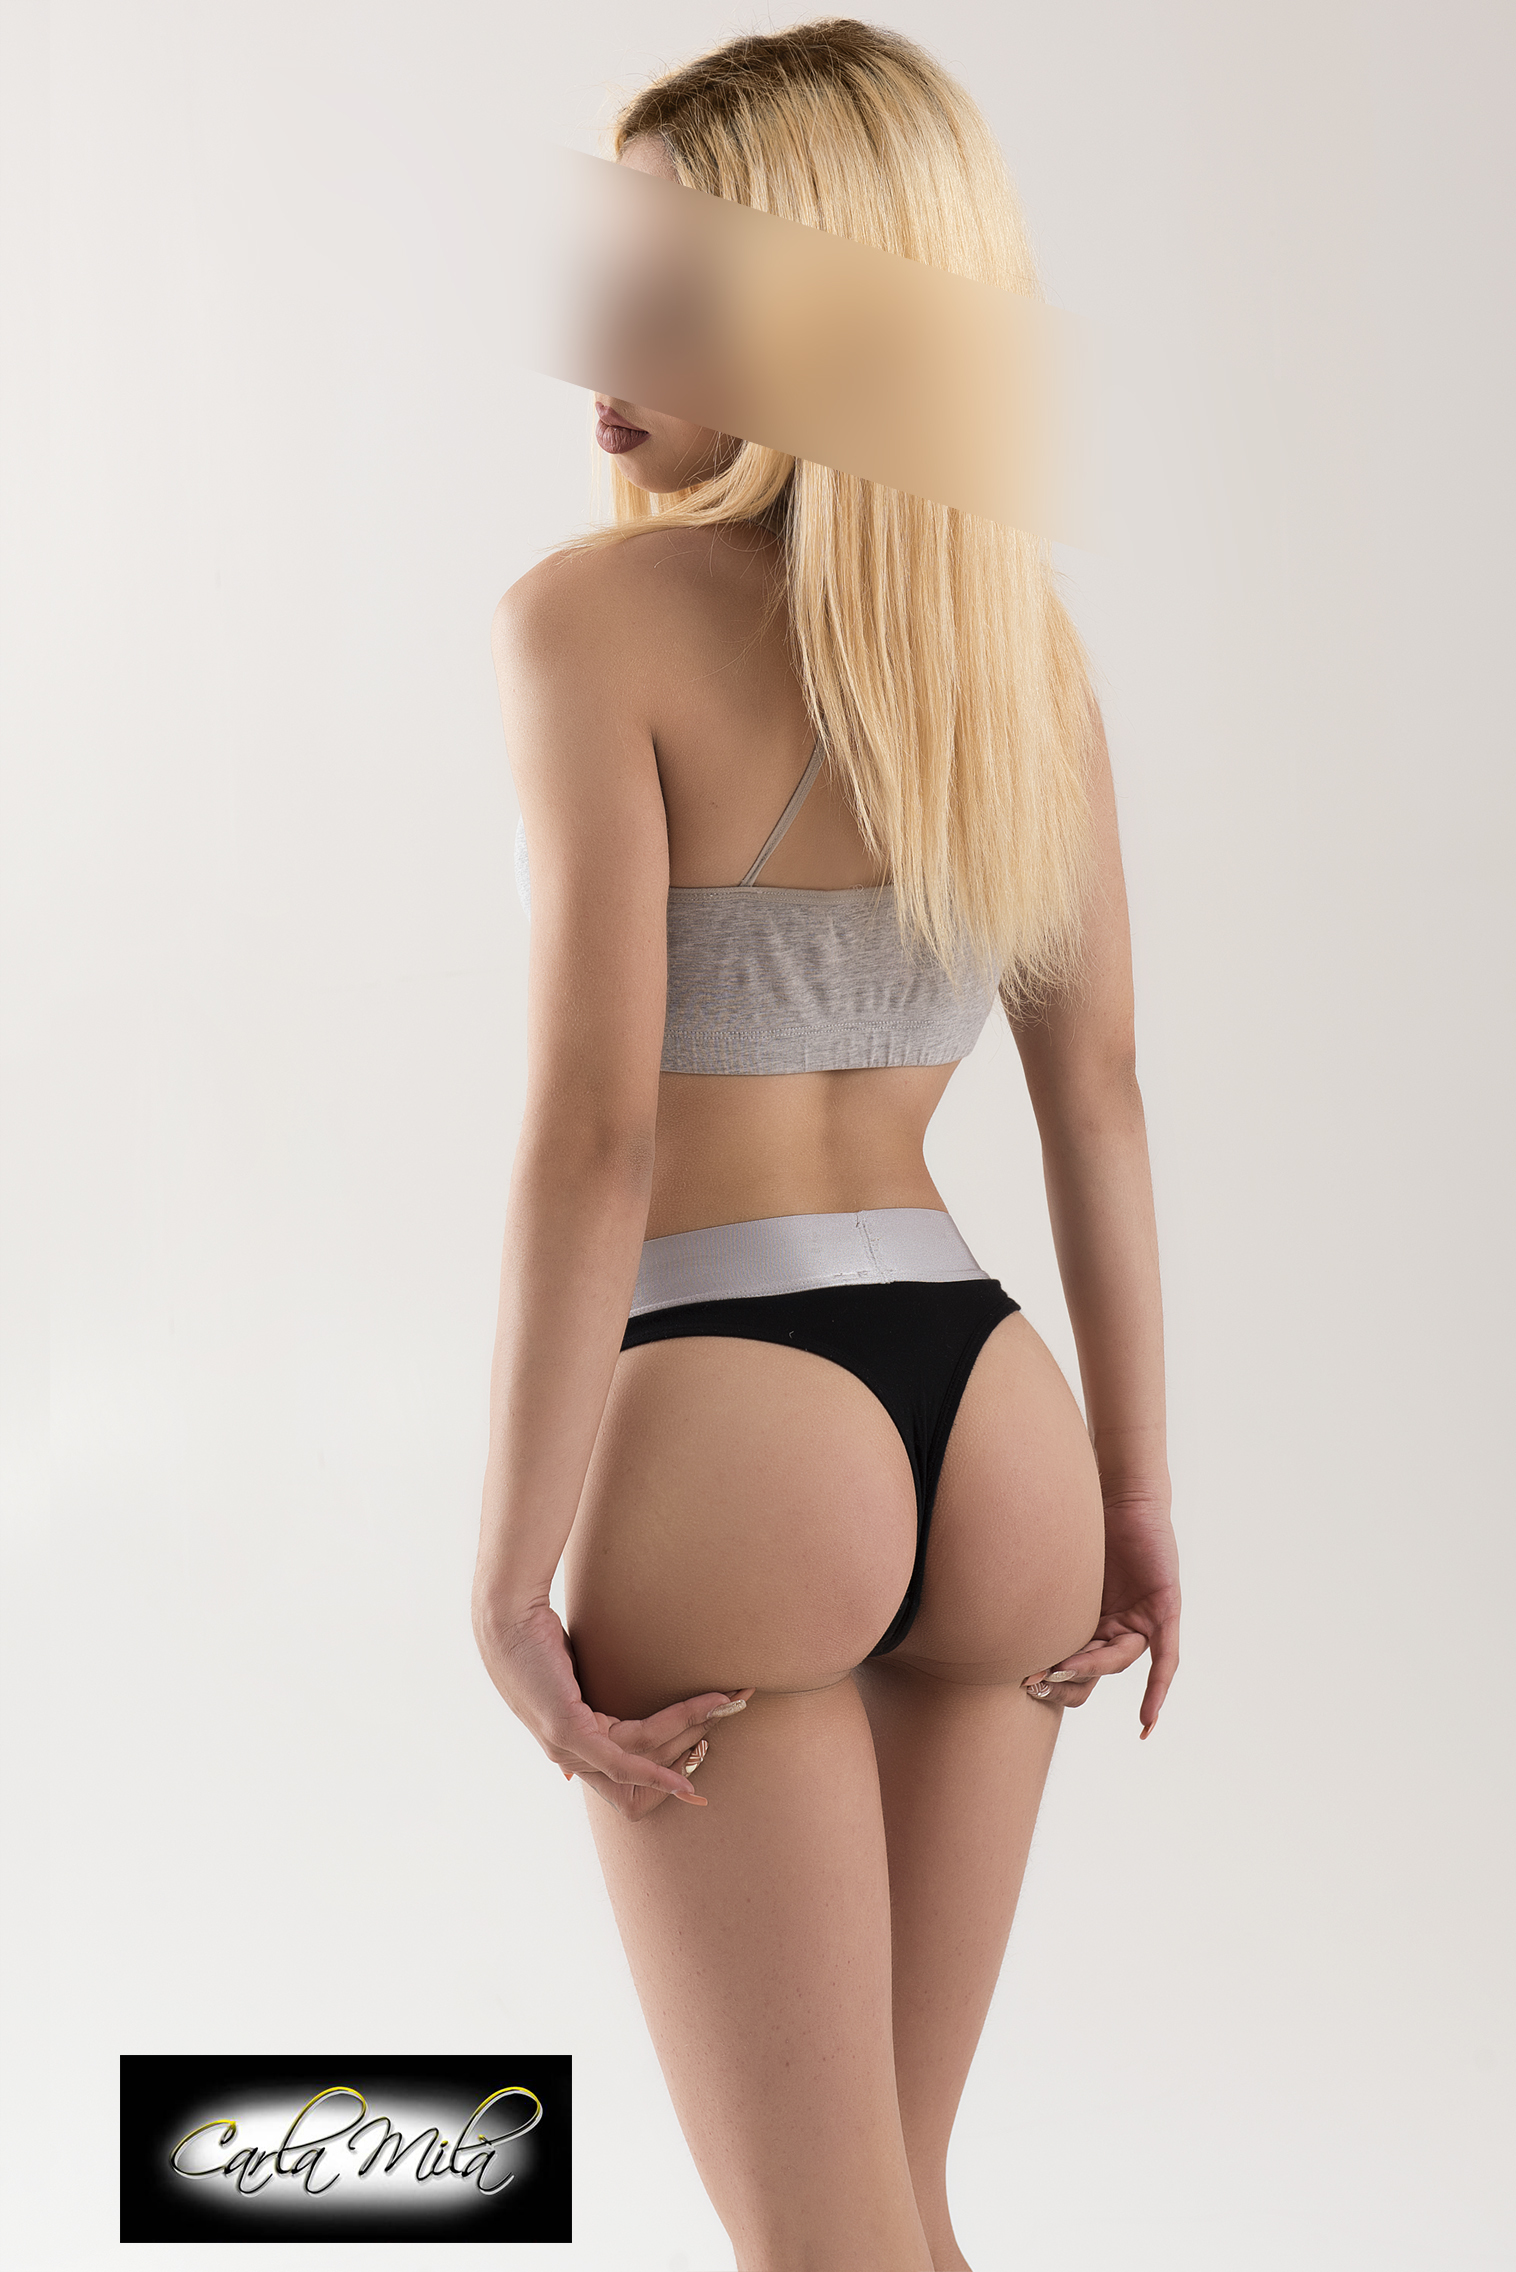 Paula. Escorts Madrid